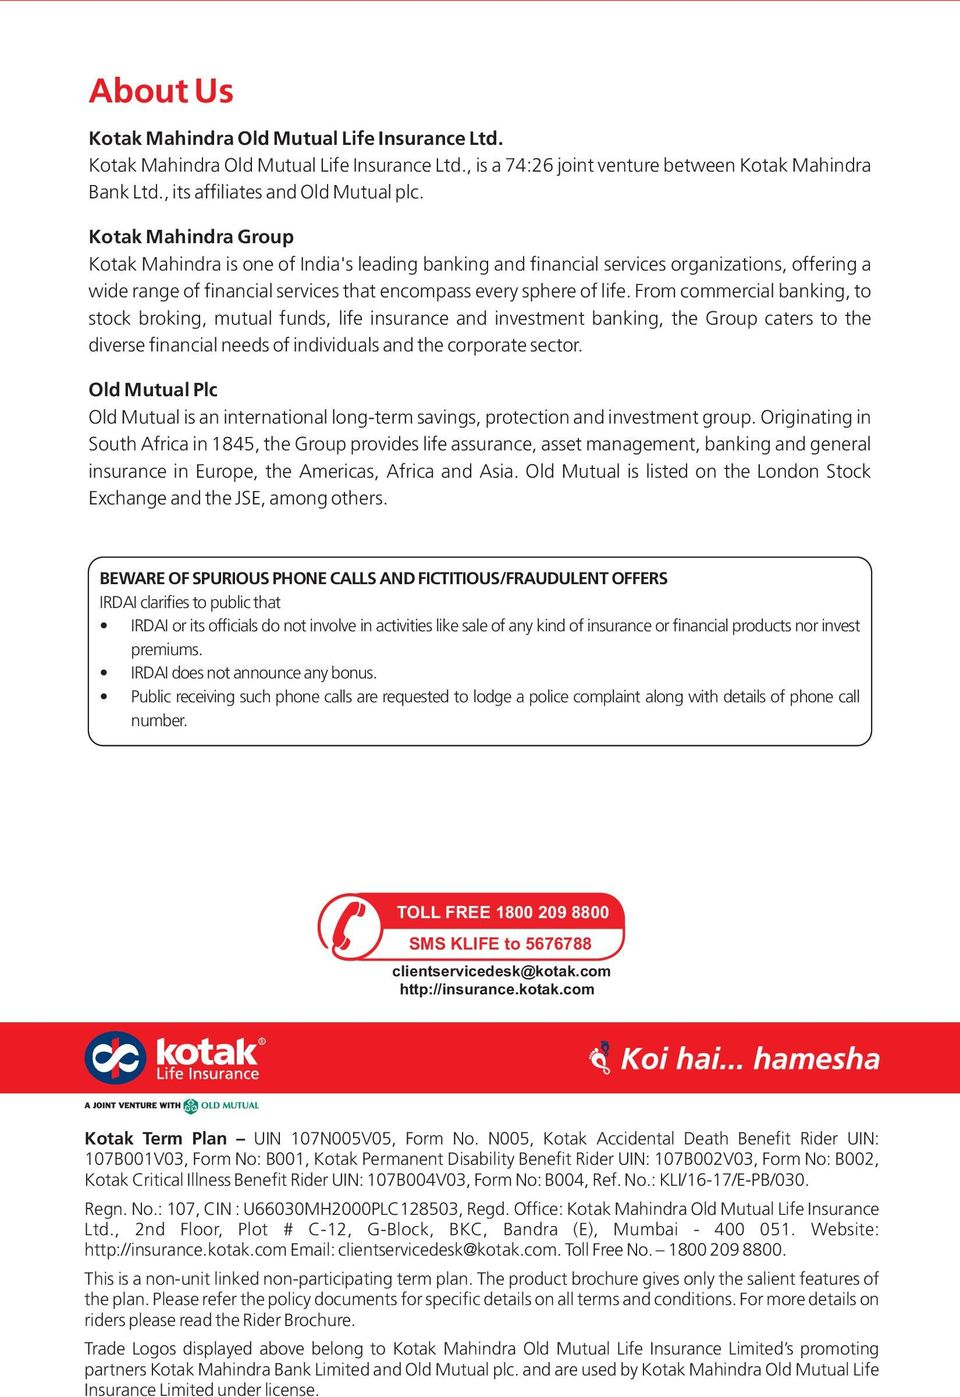 """project report on recruitment and selection process in kotak mahindra life insurance report A study on """"whether taxation is a selling tool for life insurance""""with reference to promotion of kotak recruitment-and-selection-project-report."""